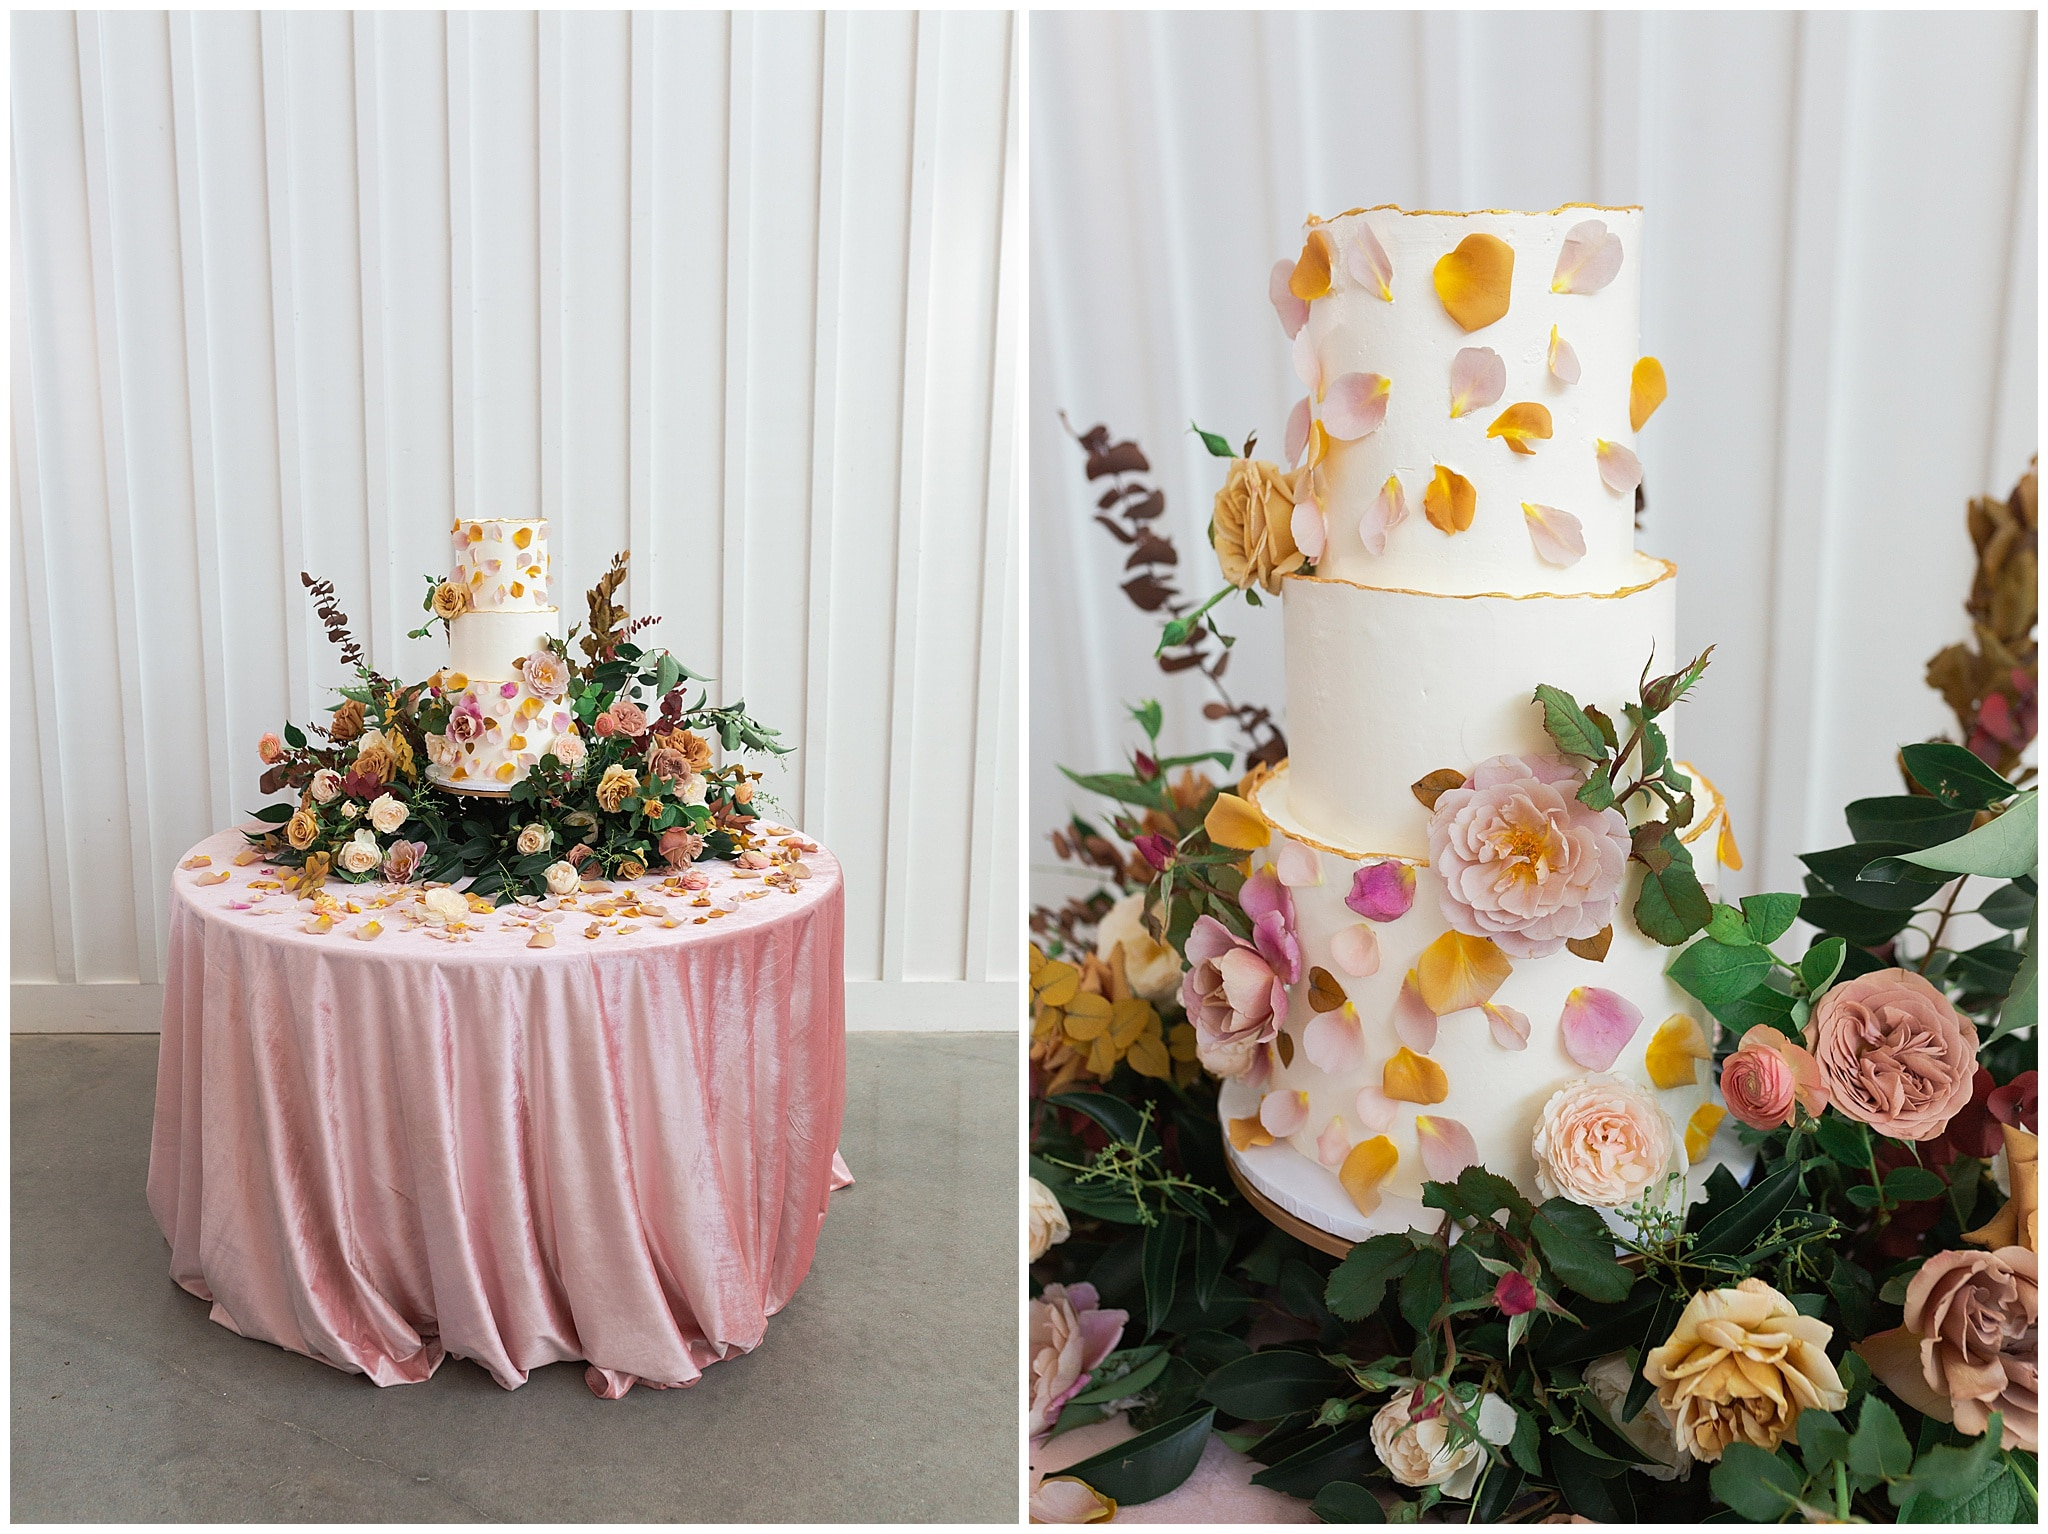 wedding cake blush and yellow tones at The Farmhouse in Montgomery TX captured by Swish and Click Photography